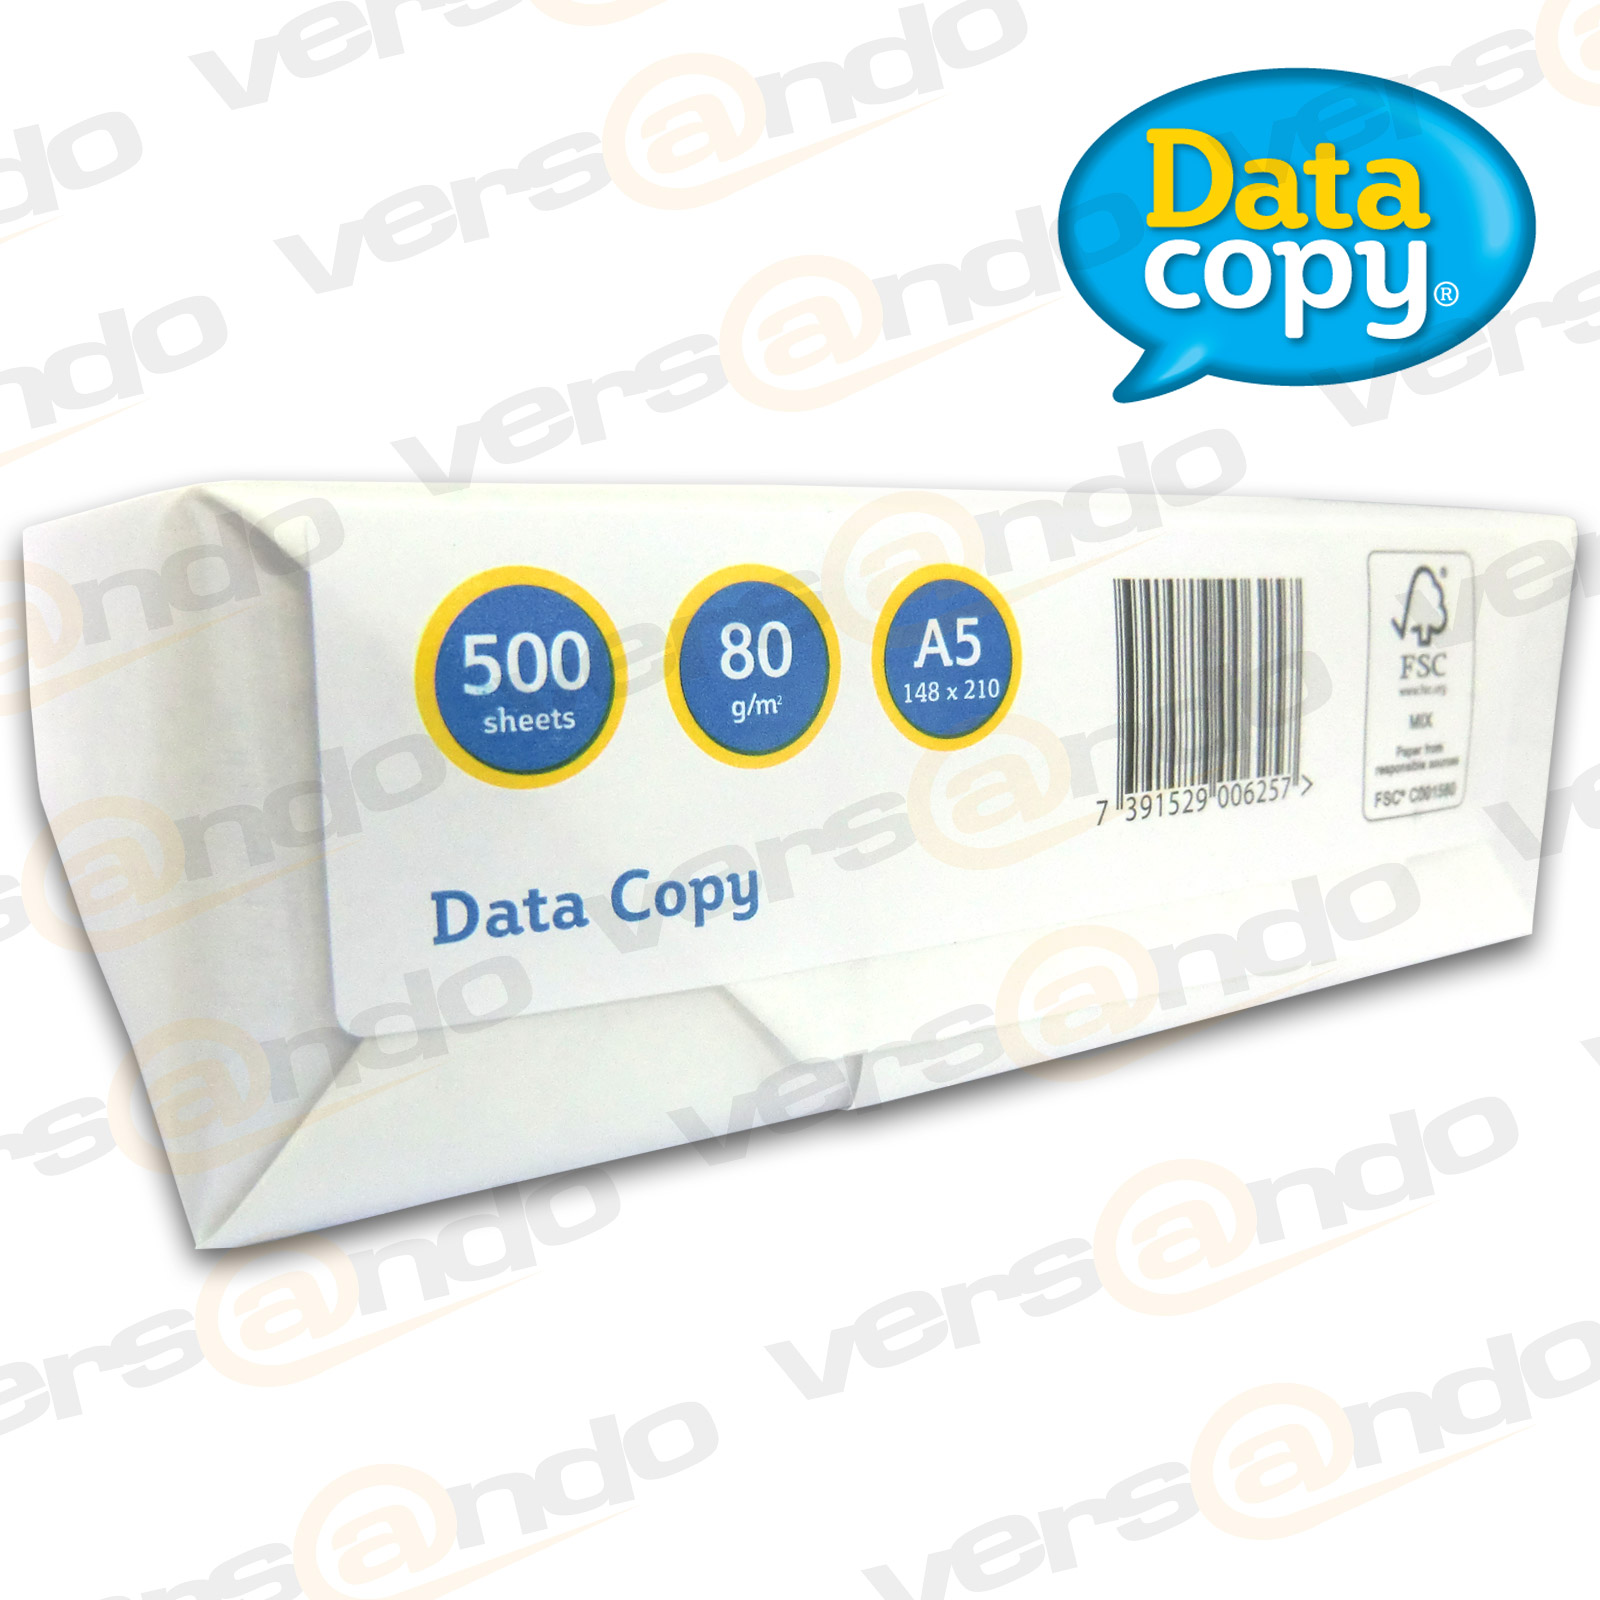 /Data-Copy-A5-Marken-Kopierpapier